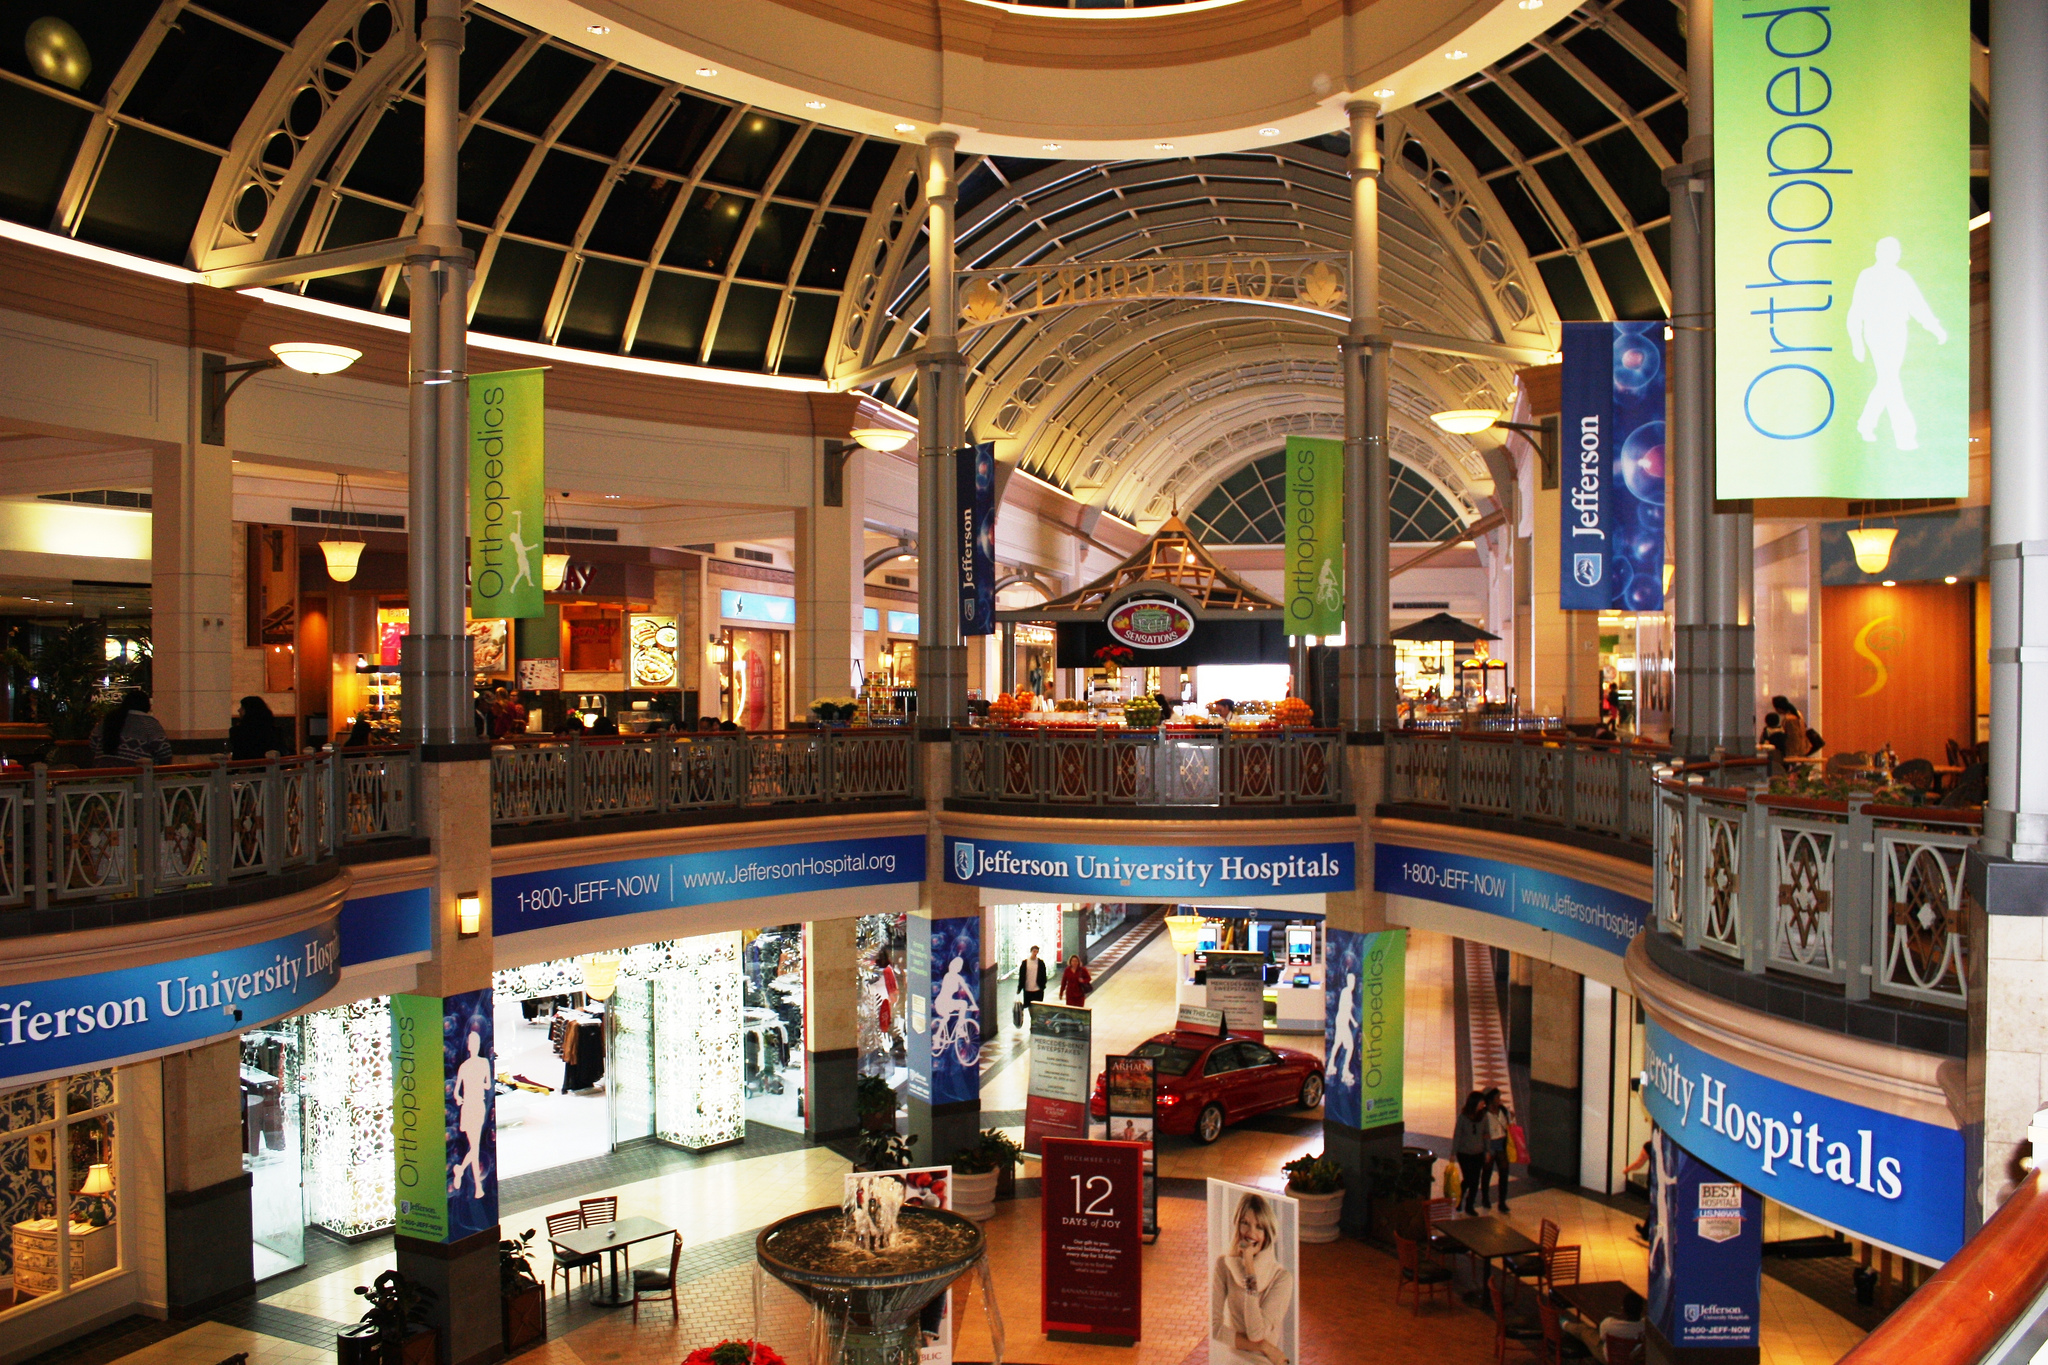 Best Philadelphia Shopping: See reviews and photos of shops, malls & outlets in Philadelphia, Pennsylvania on TripAdvisor.